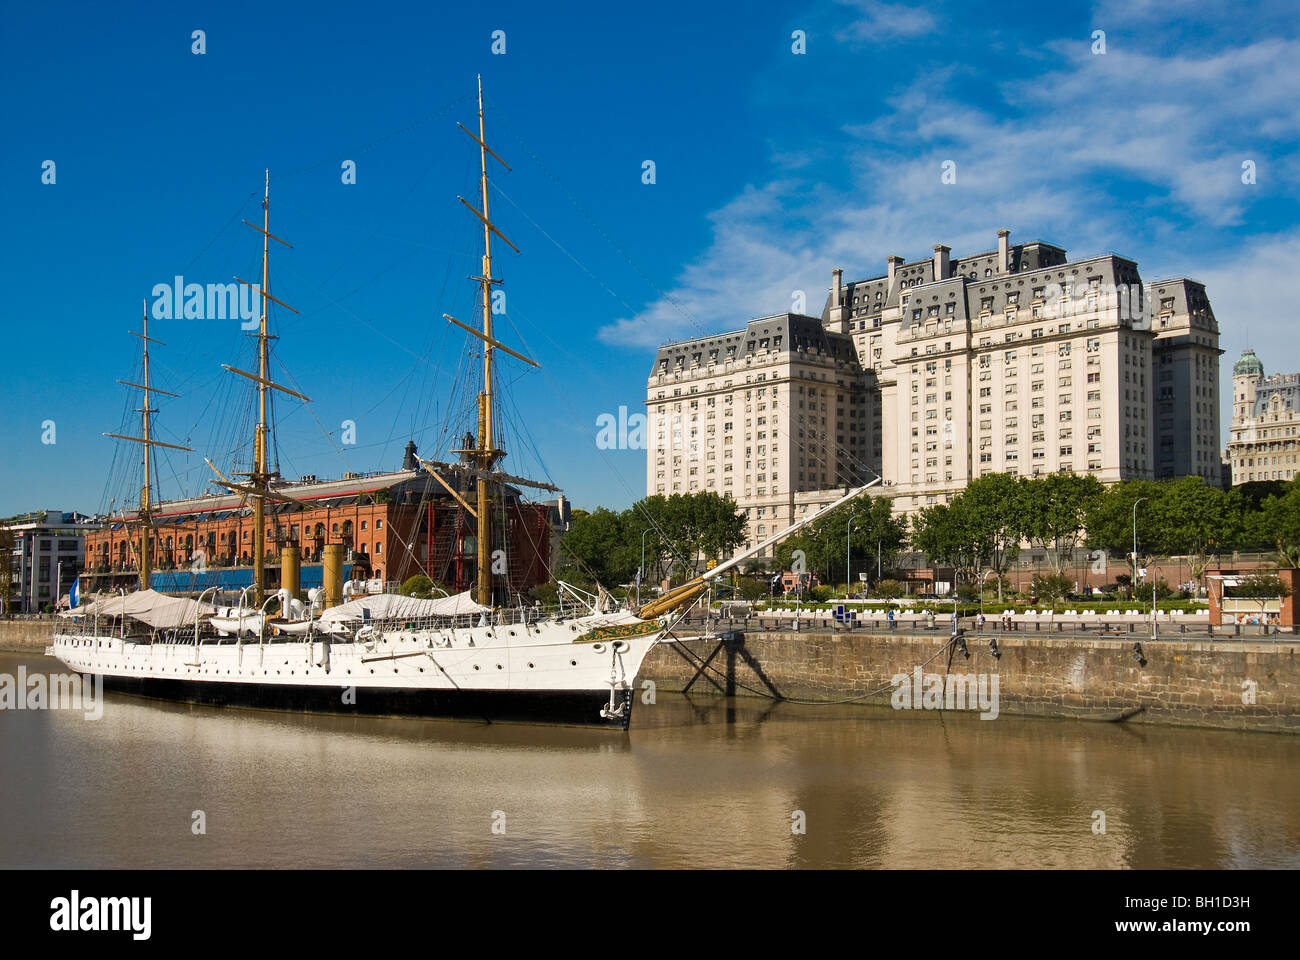 Libertador Building, a ship museum in the Puerto Madero Waterfront district of Buenos Aires, Argentina - Stock Image